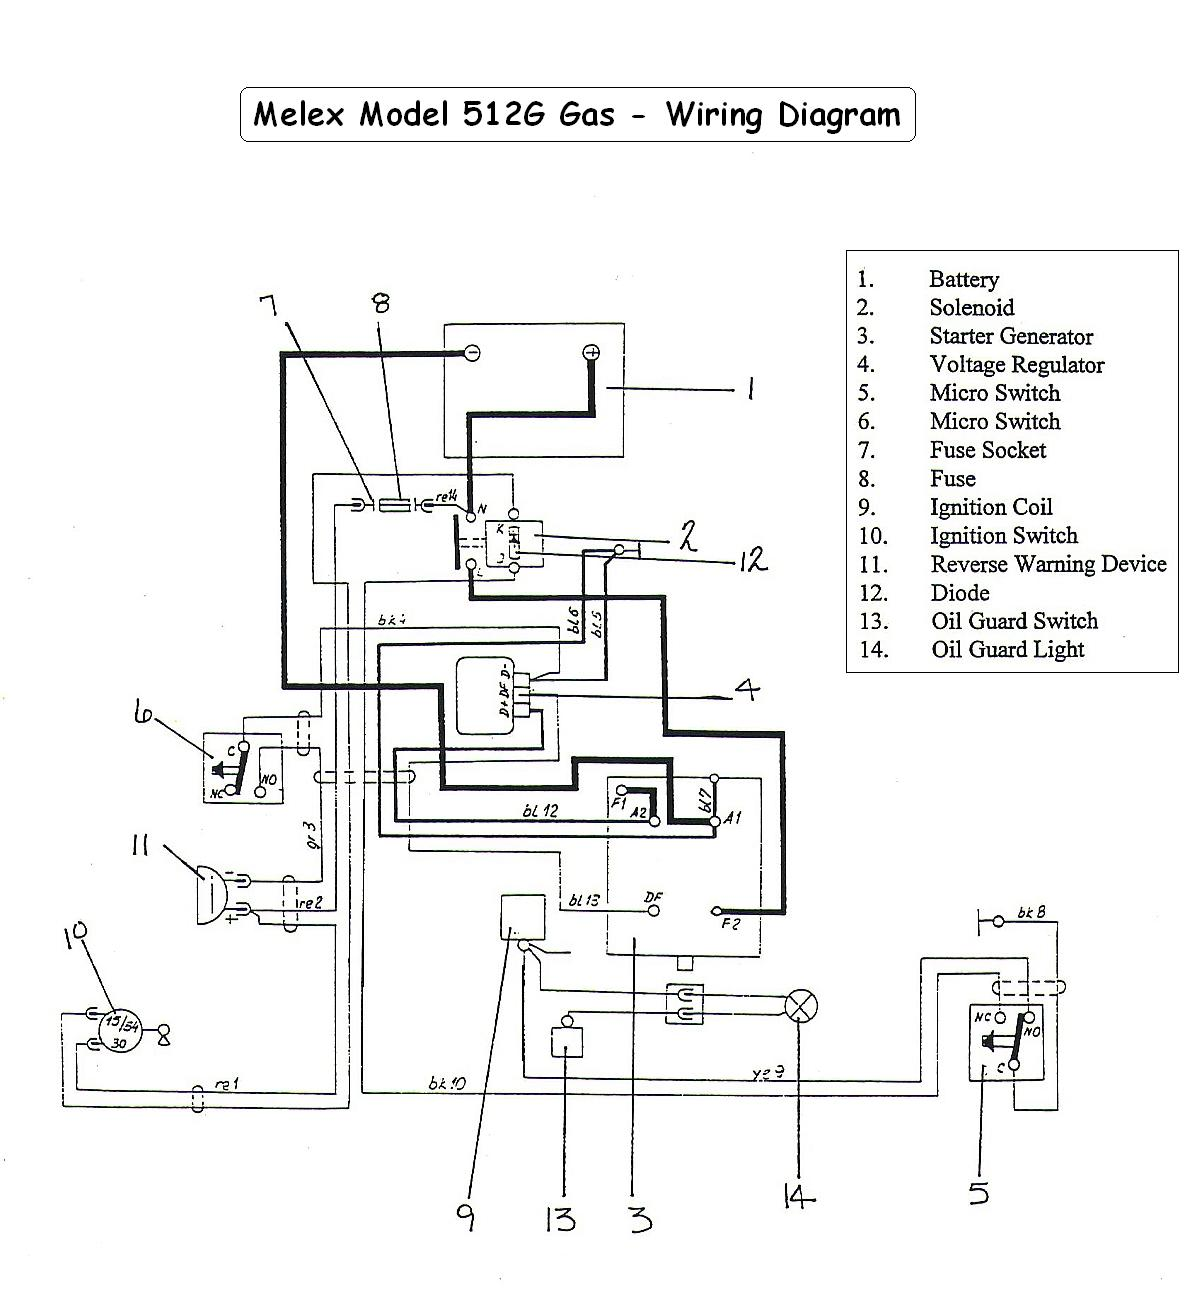 Melex512G_wiring_diagram vintagegolfcartparts com battery wiring diagram melex golf cart at bakdesigns.co